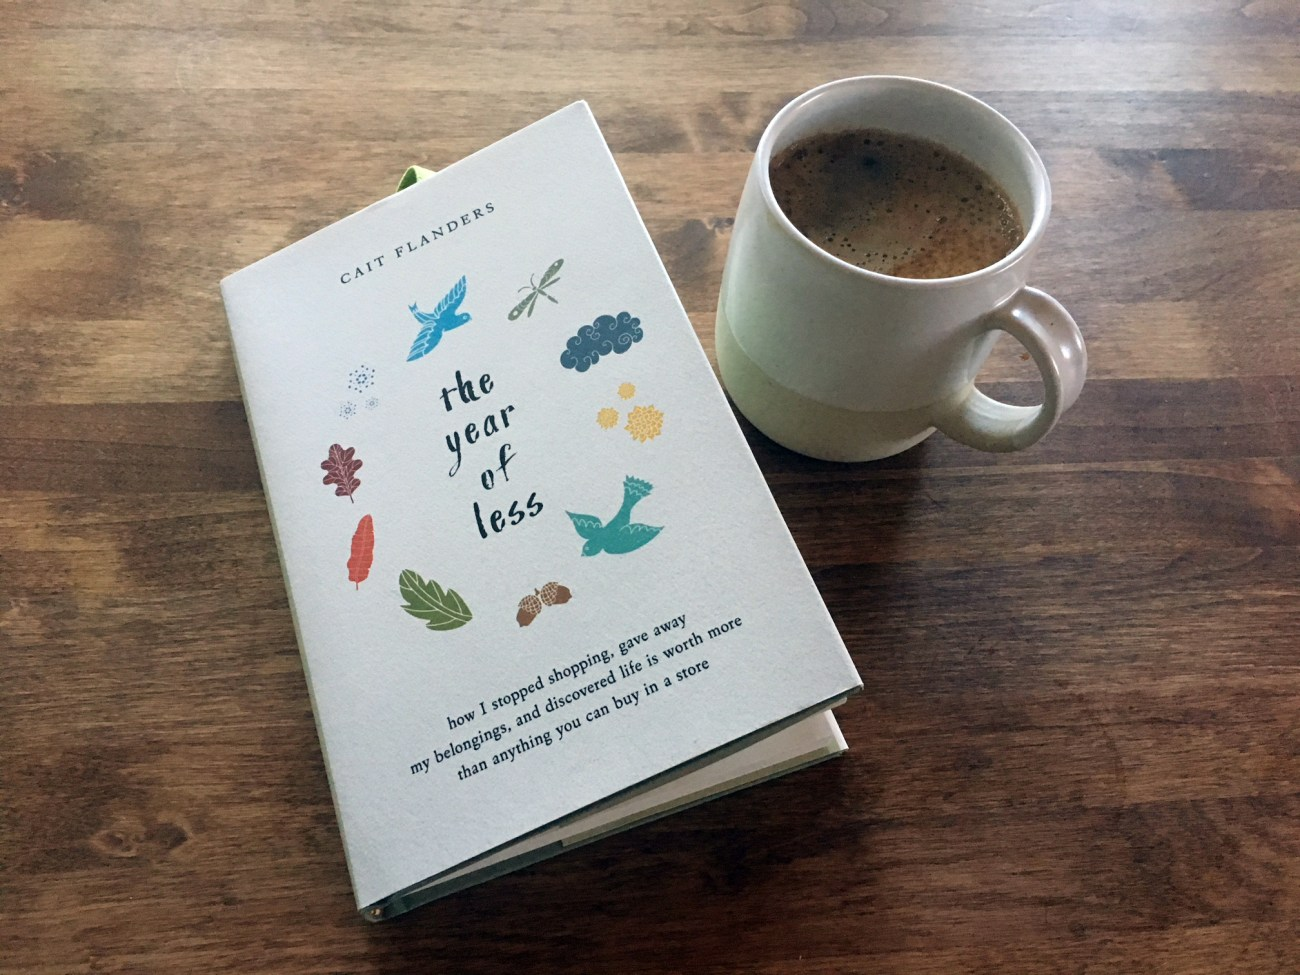 Cait Flanders' new book, The Year of Less, with my morning coffee. The Nothing New Year Redux, Celebrating a Year of Less (minimalism, decluttering, simple living, simplicity, intentional living, mindfulness, shopping ban, Cait Flanders)